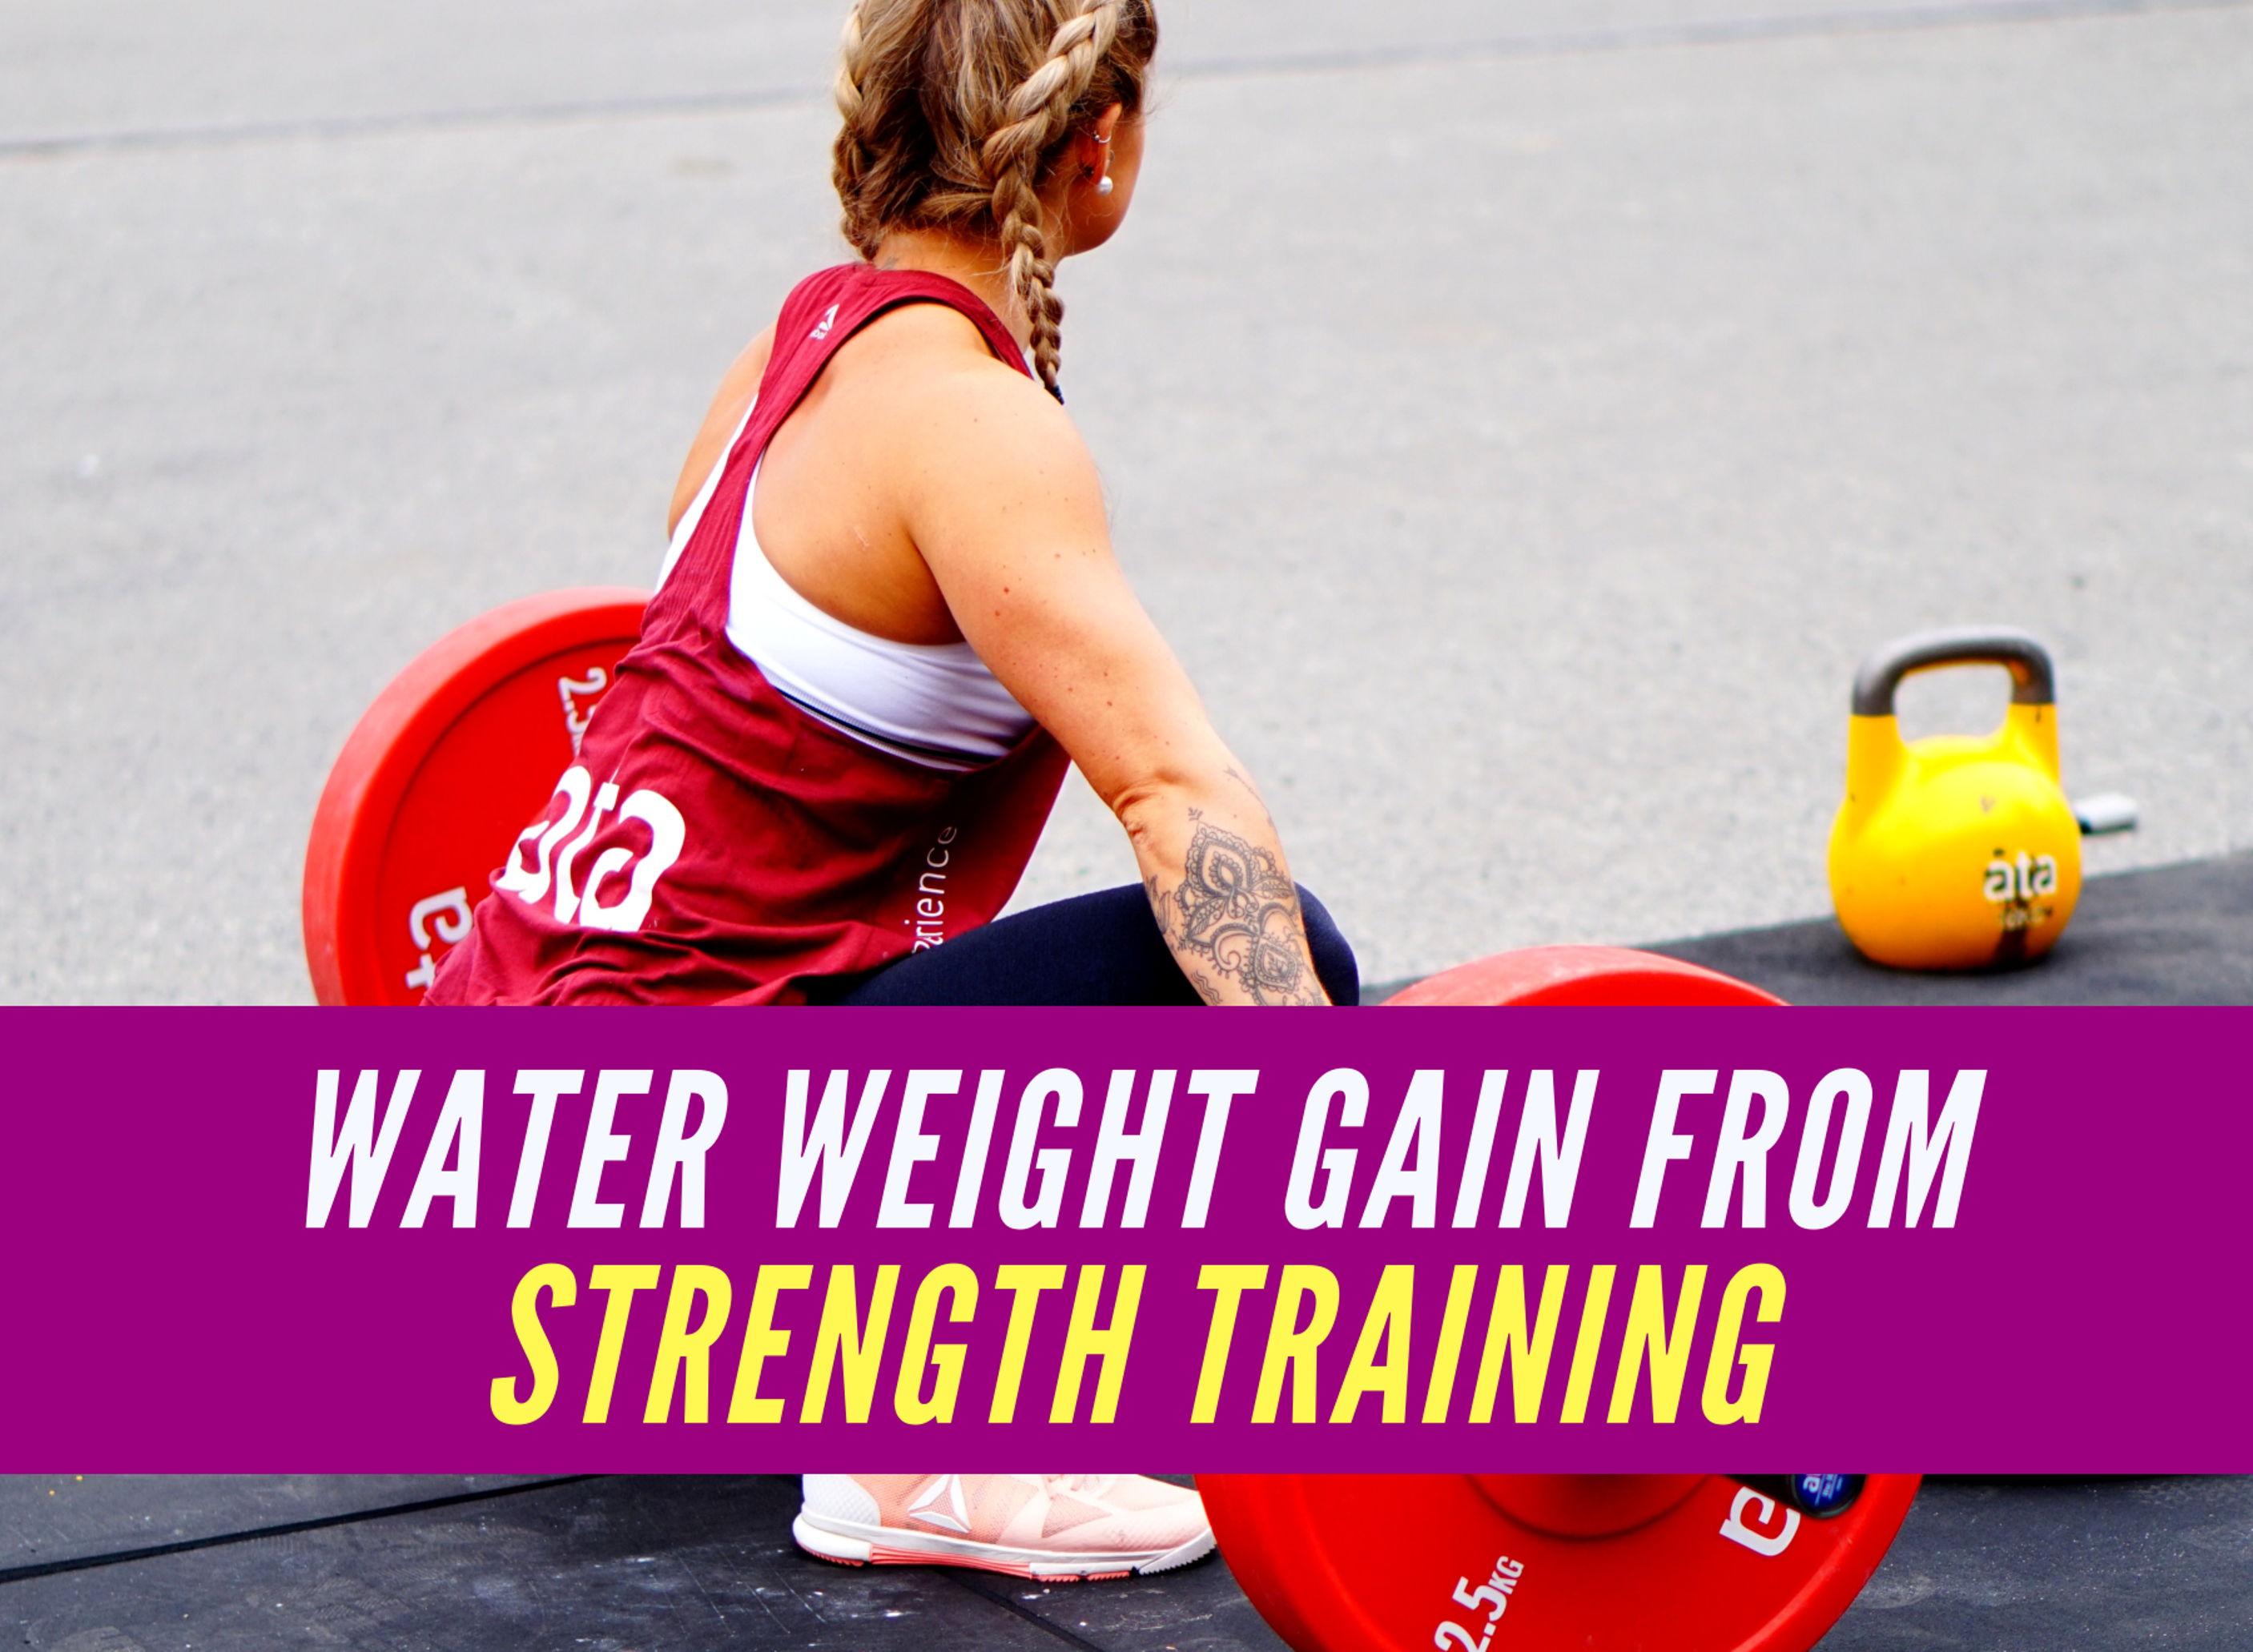 Water Weight Gain From Strength Training